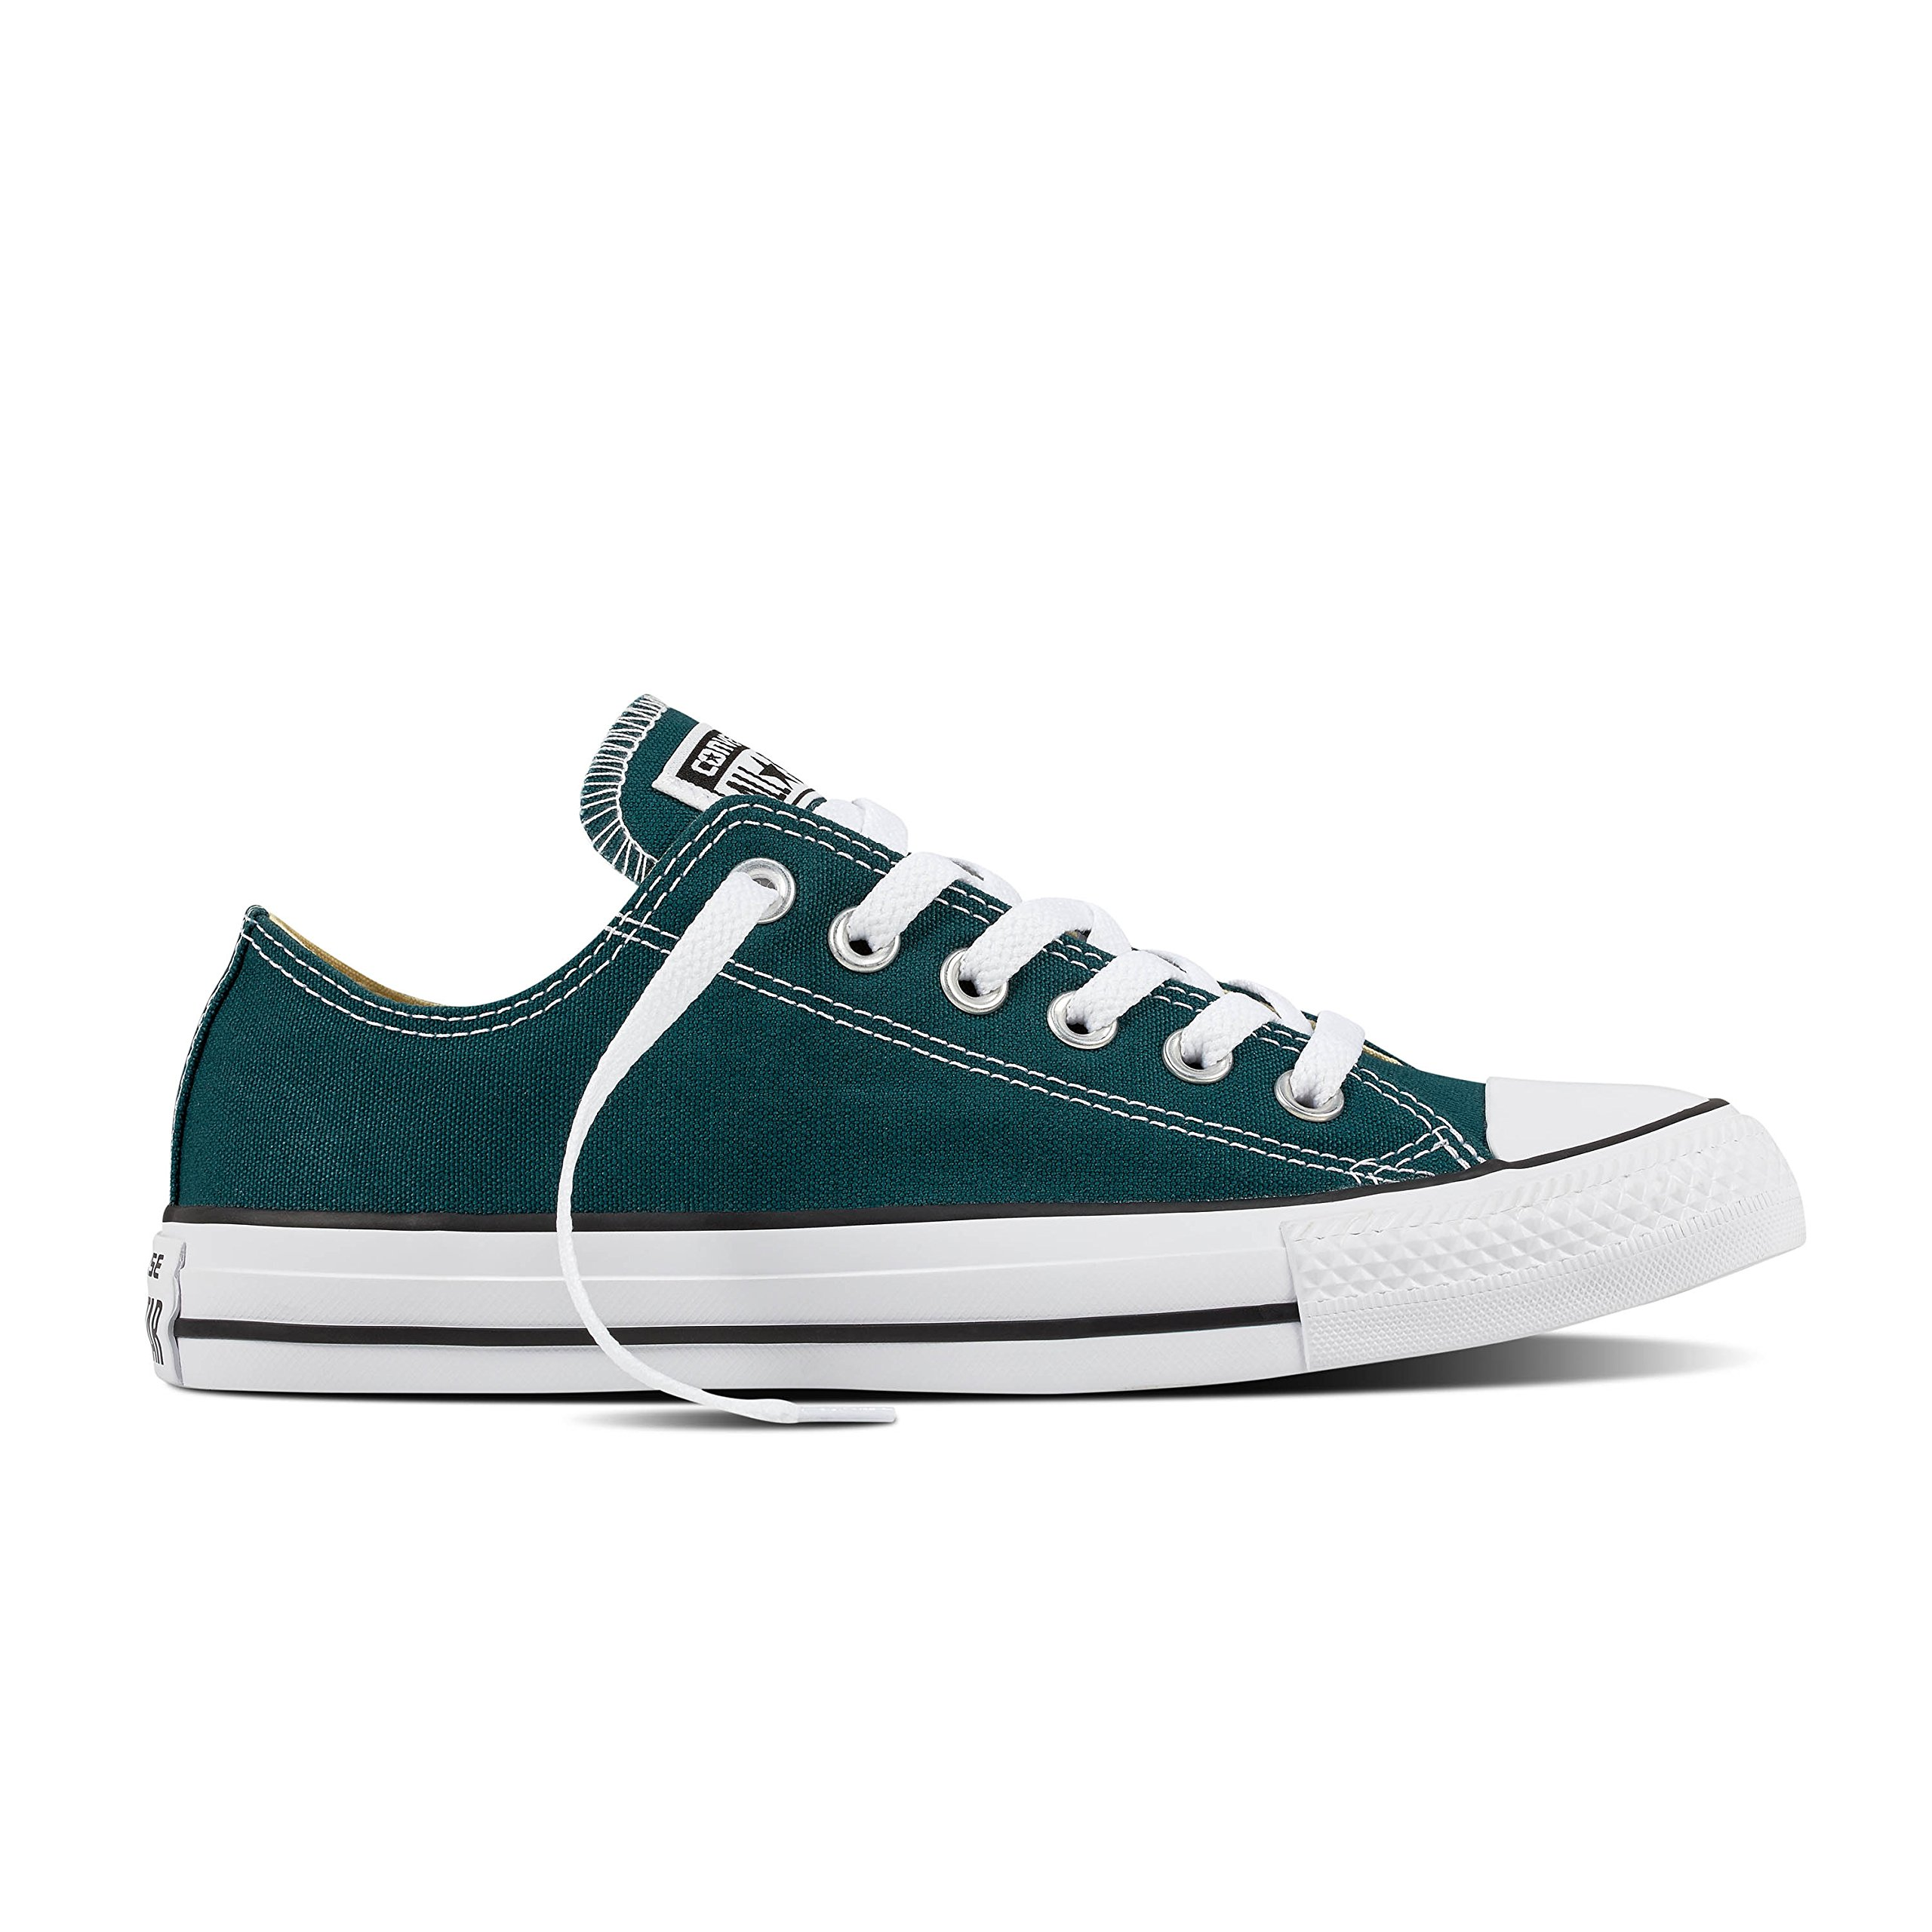 Converse Chuck Taylor All Star OX Men's Shoes Dark Atomic Teal 157647f (7.5 D(M) US)